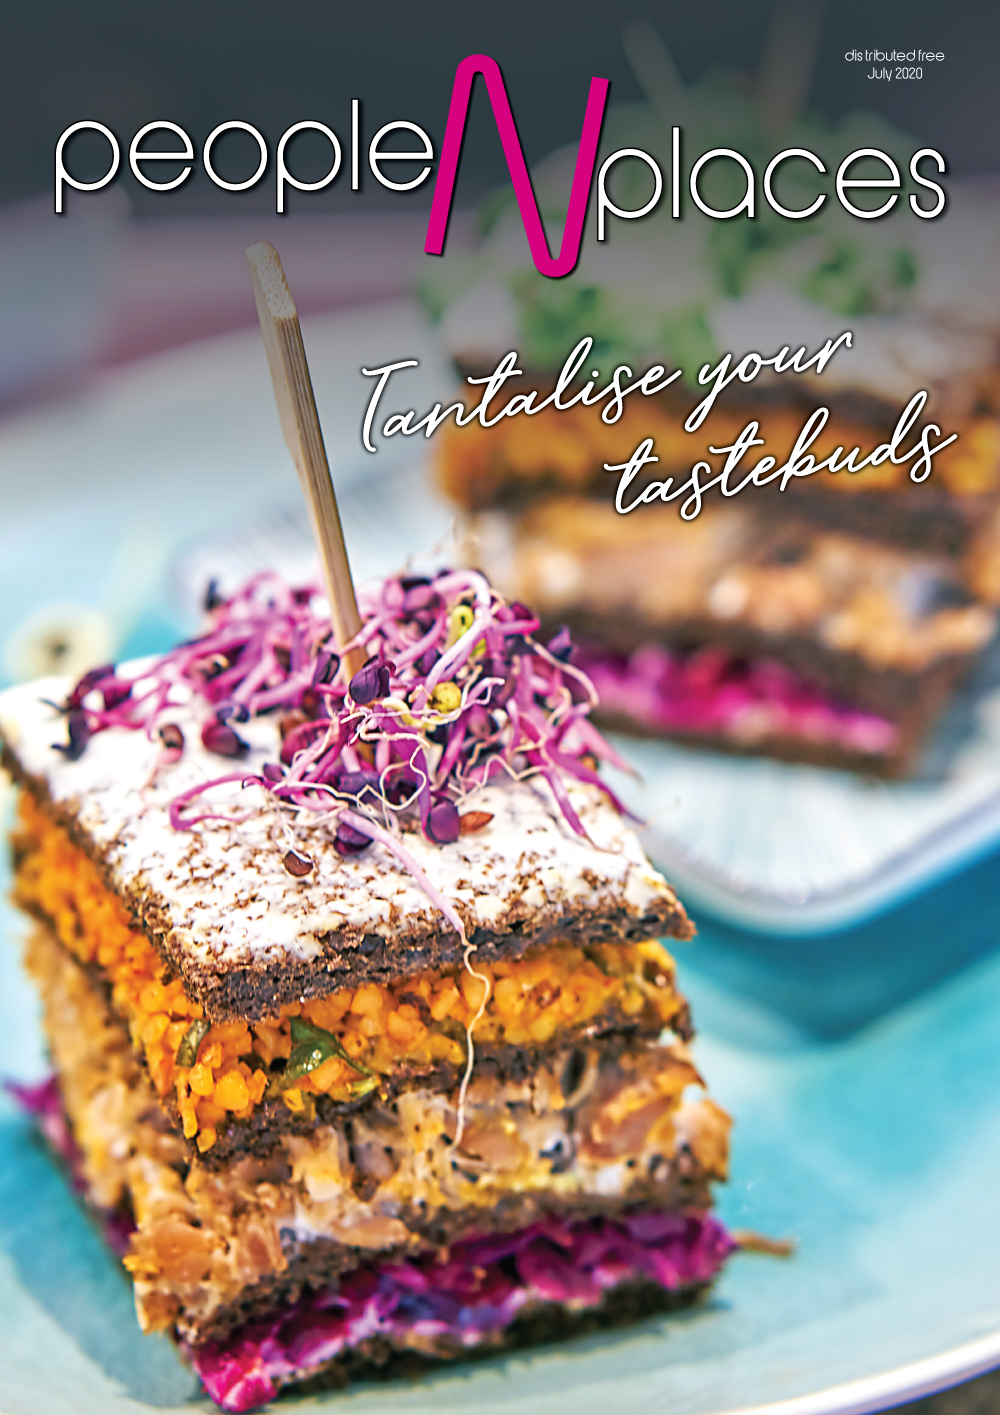 2020-07-FRONT-COVER-FOOD-2020-07